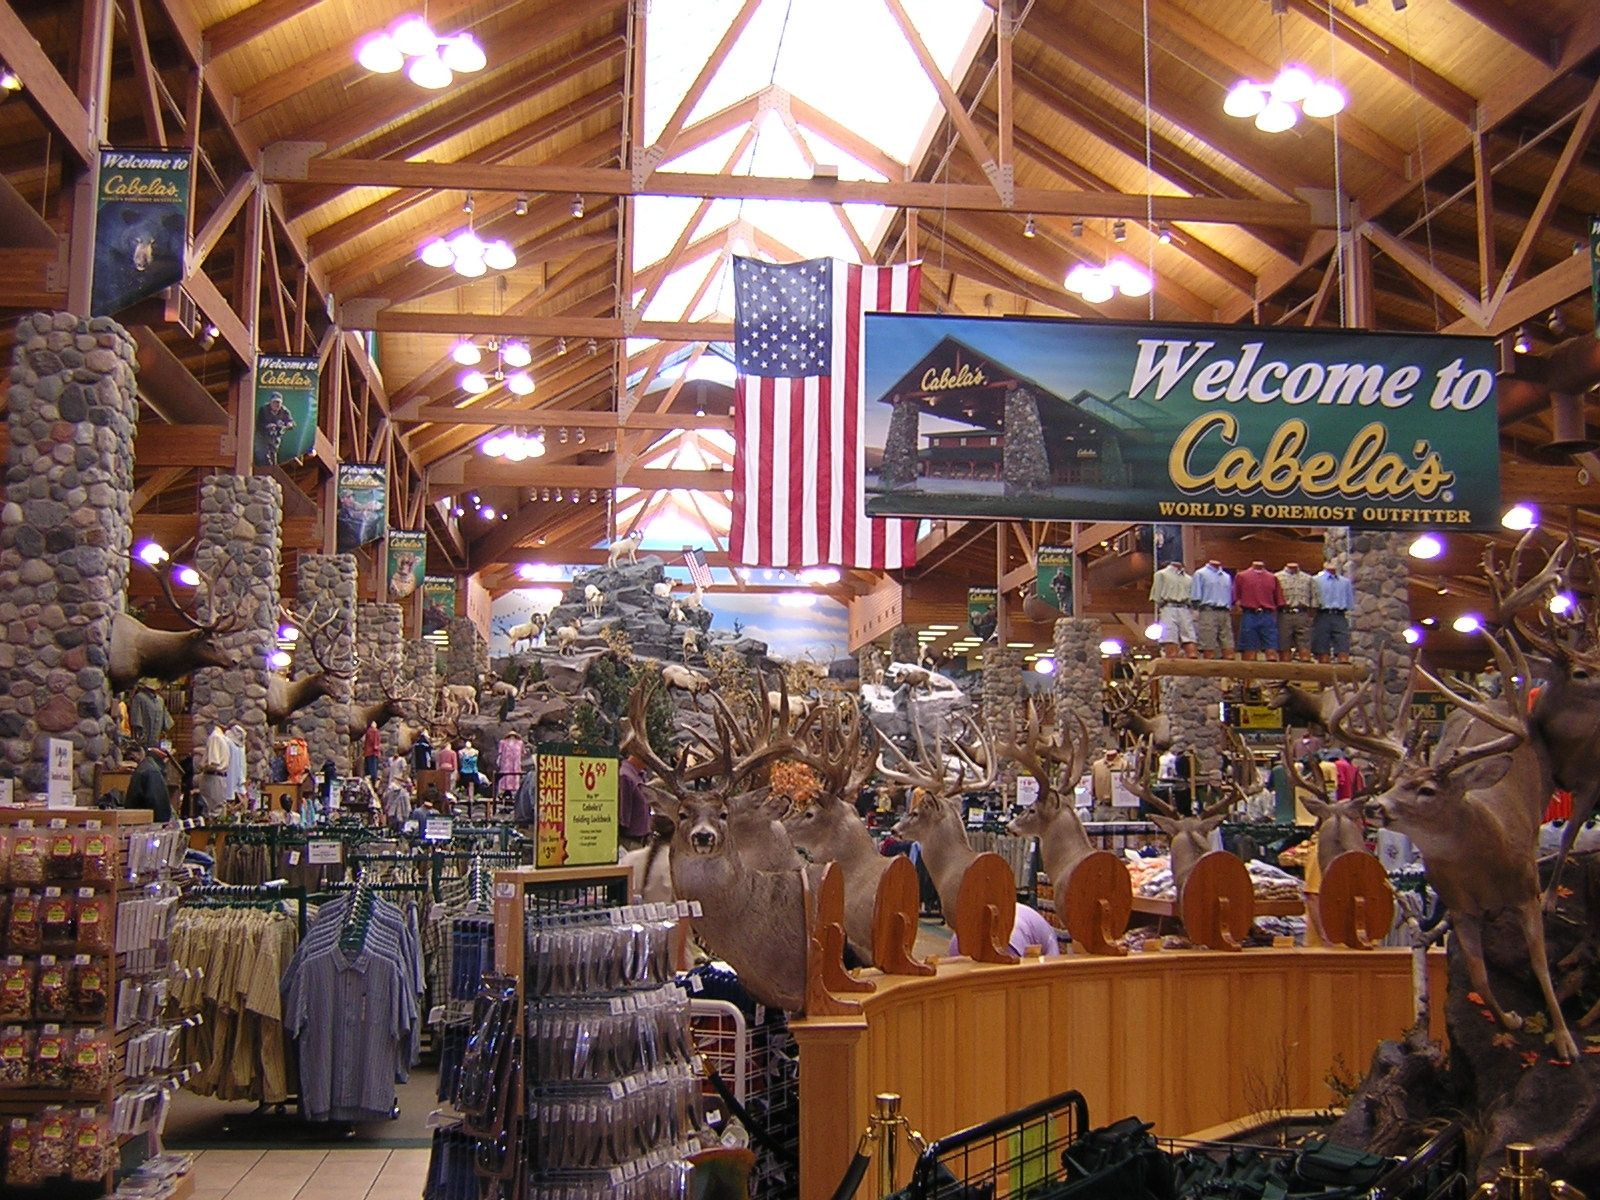 Cabela s the World s Foremost Outfitter of hunting fishing and